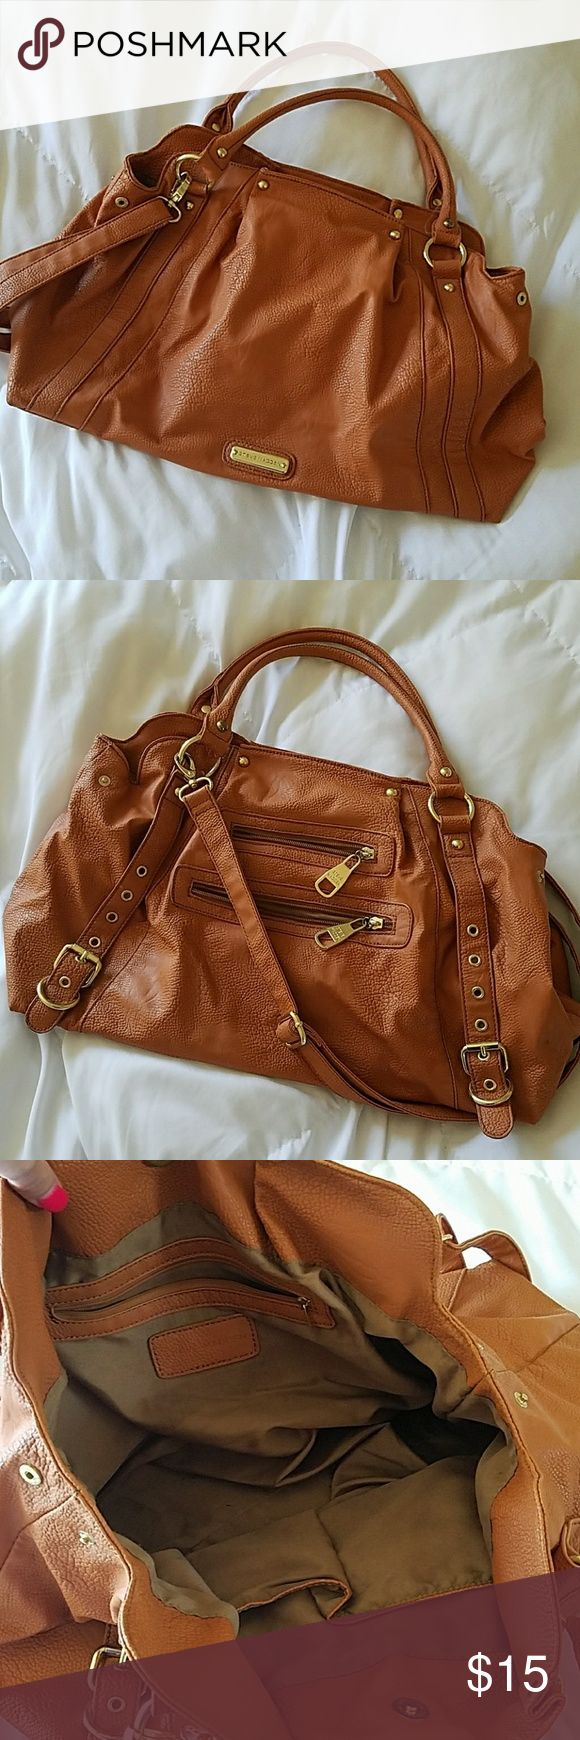 STEVE Madden Large Purse Steve madden handbad. Large size. Great condition! Steve Madden Bags